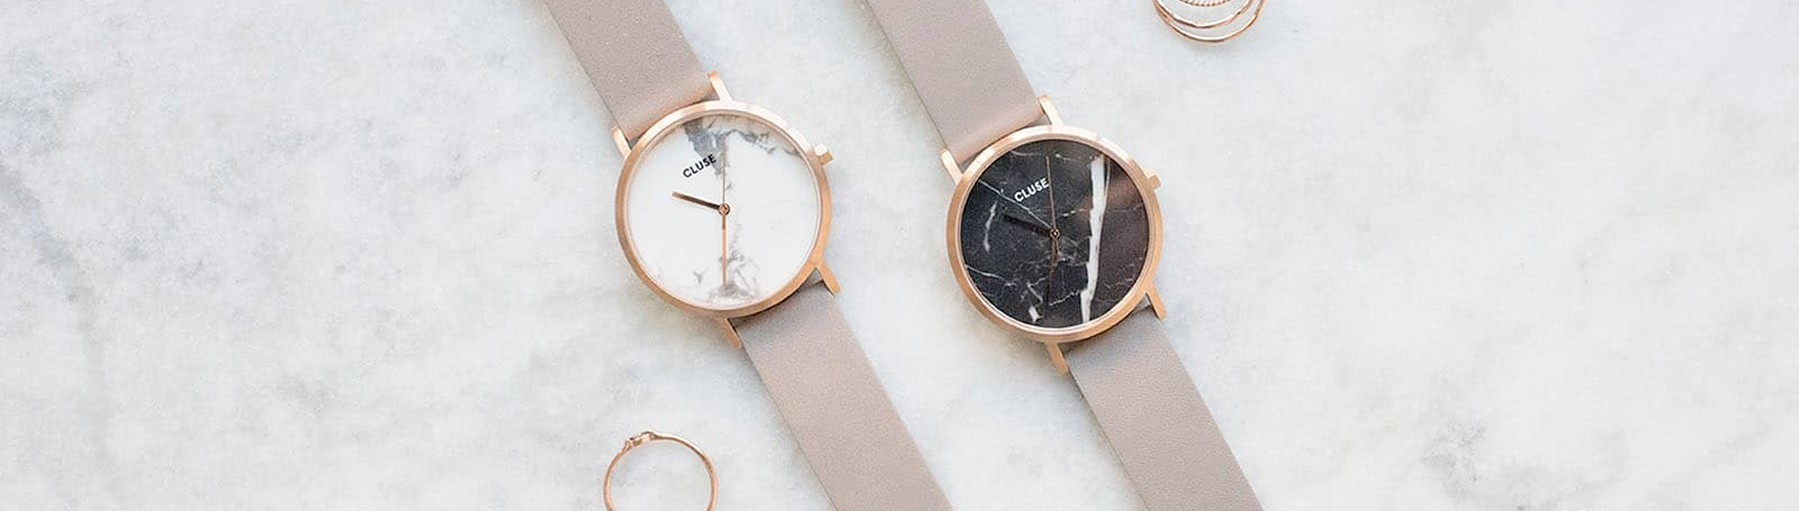 CLUSE relojes